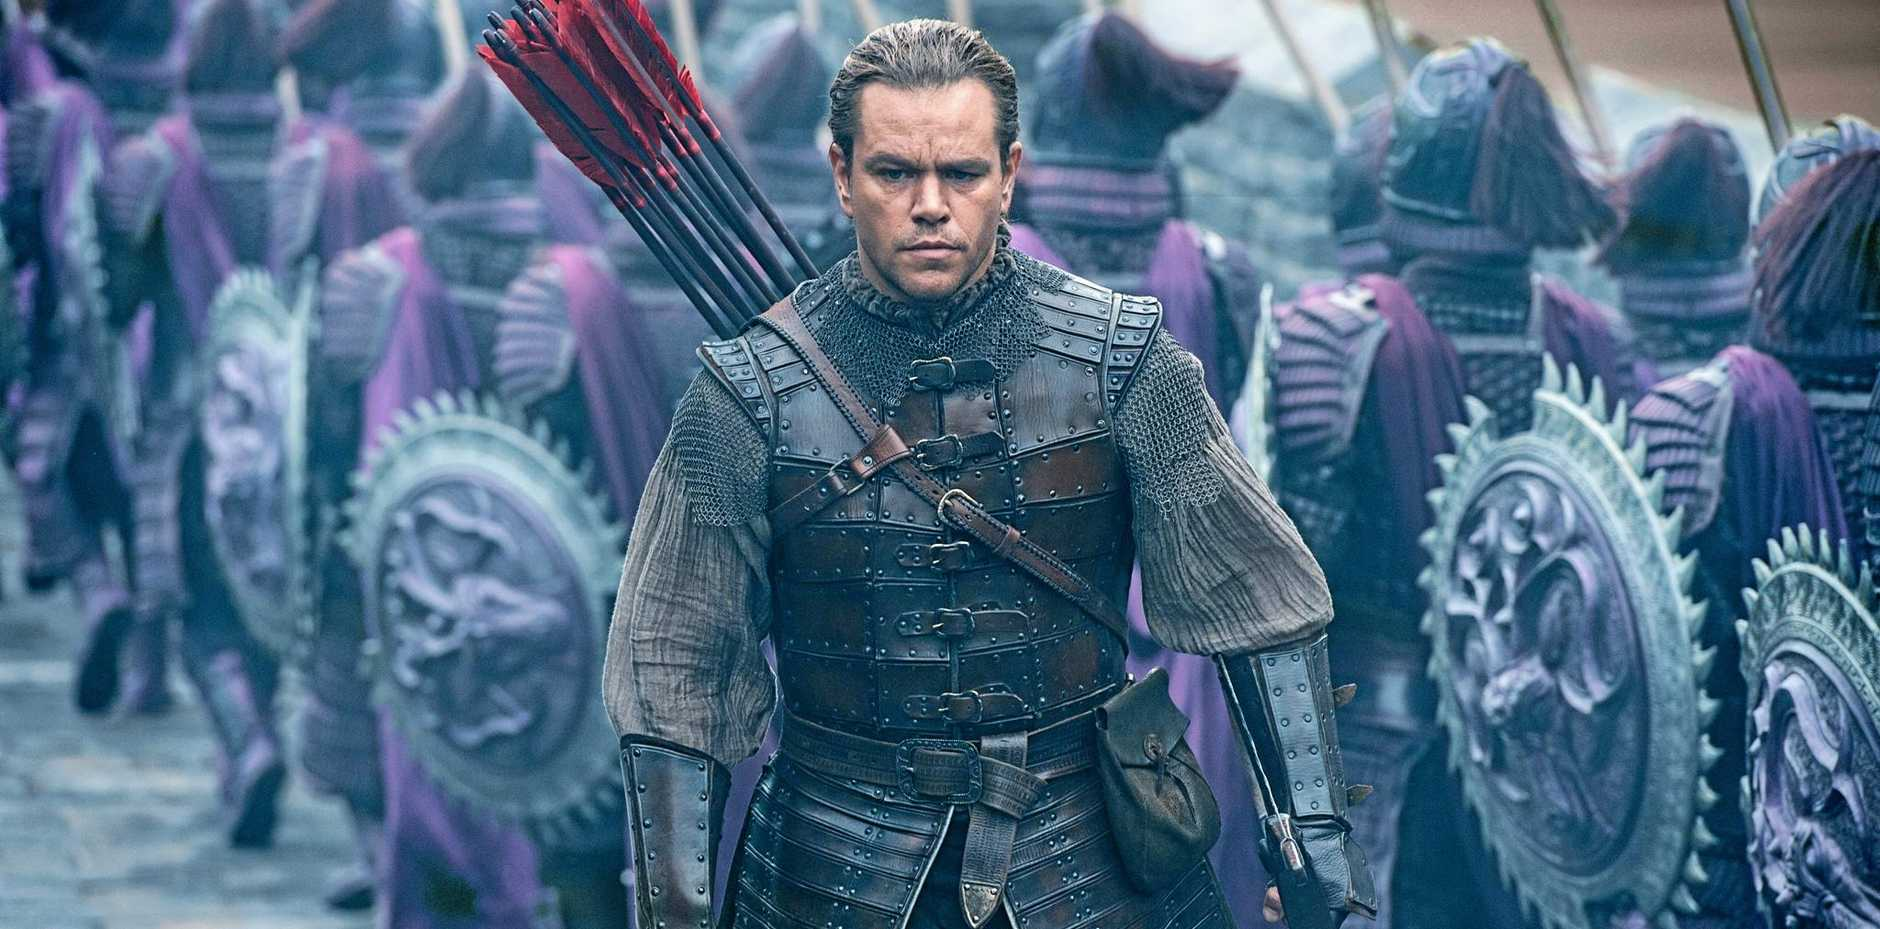 Matt Damon fails in a scene from the movie The Great Wall.